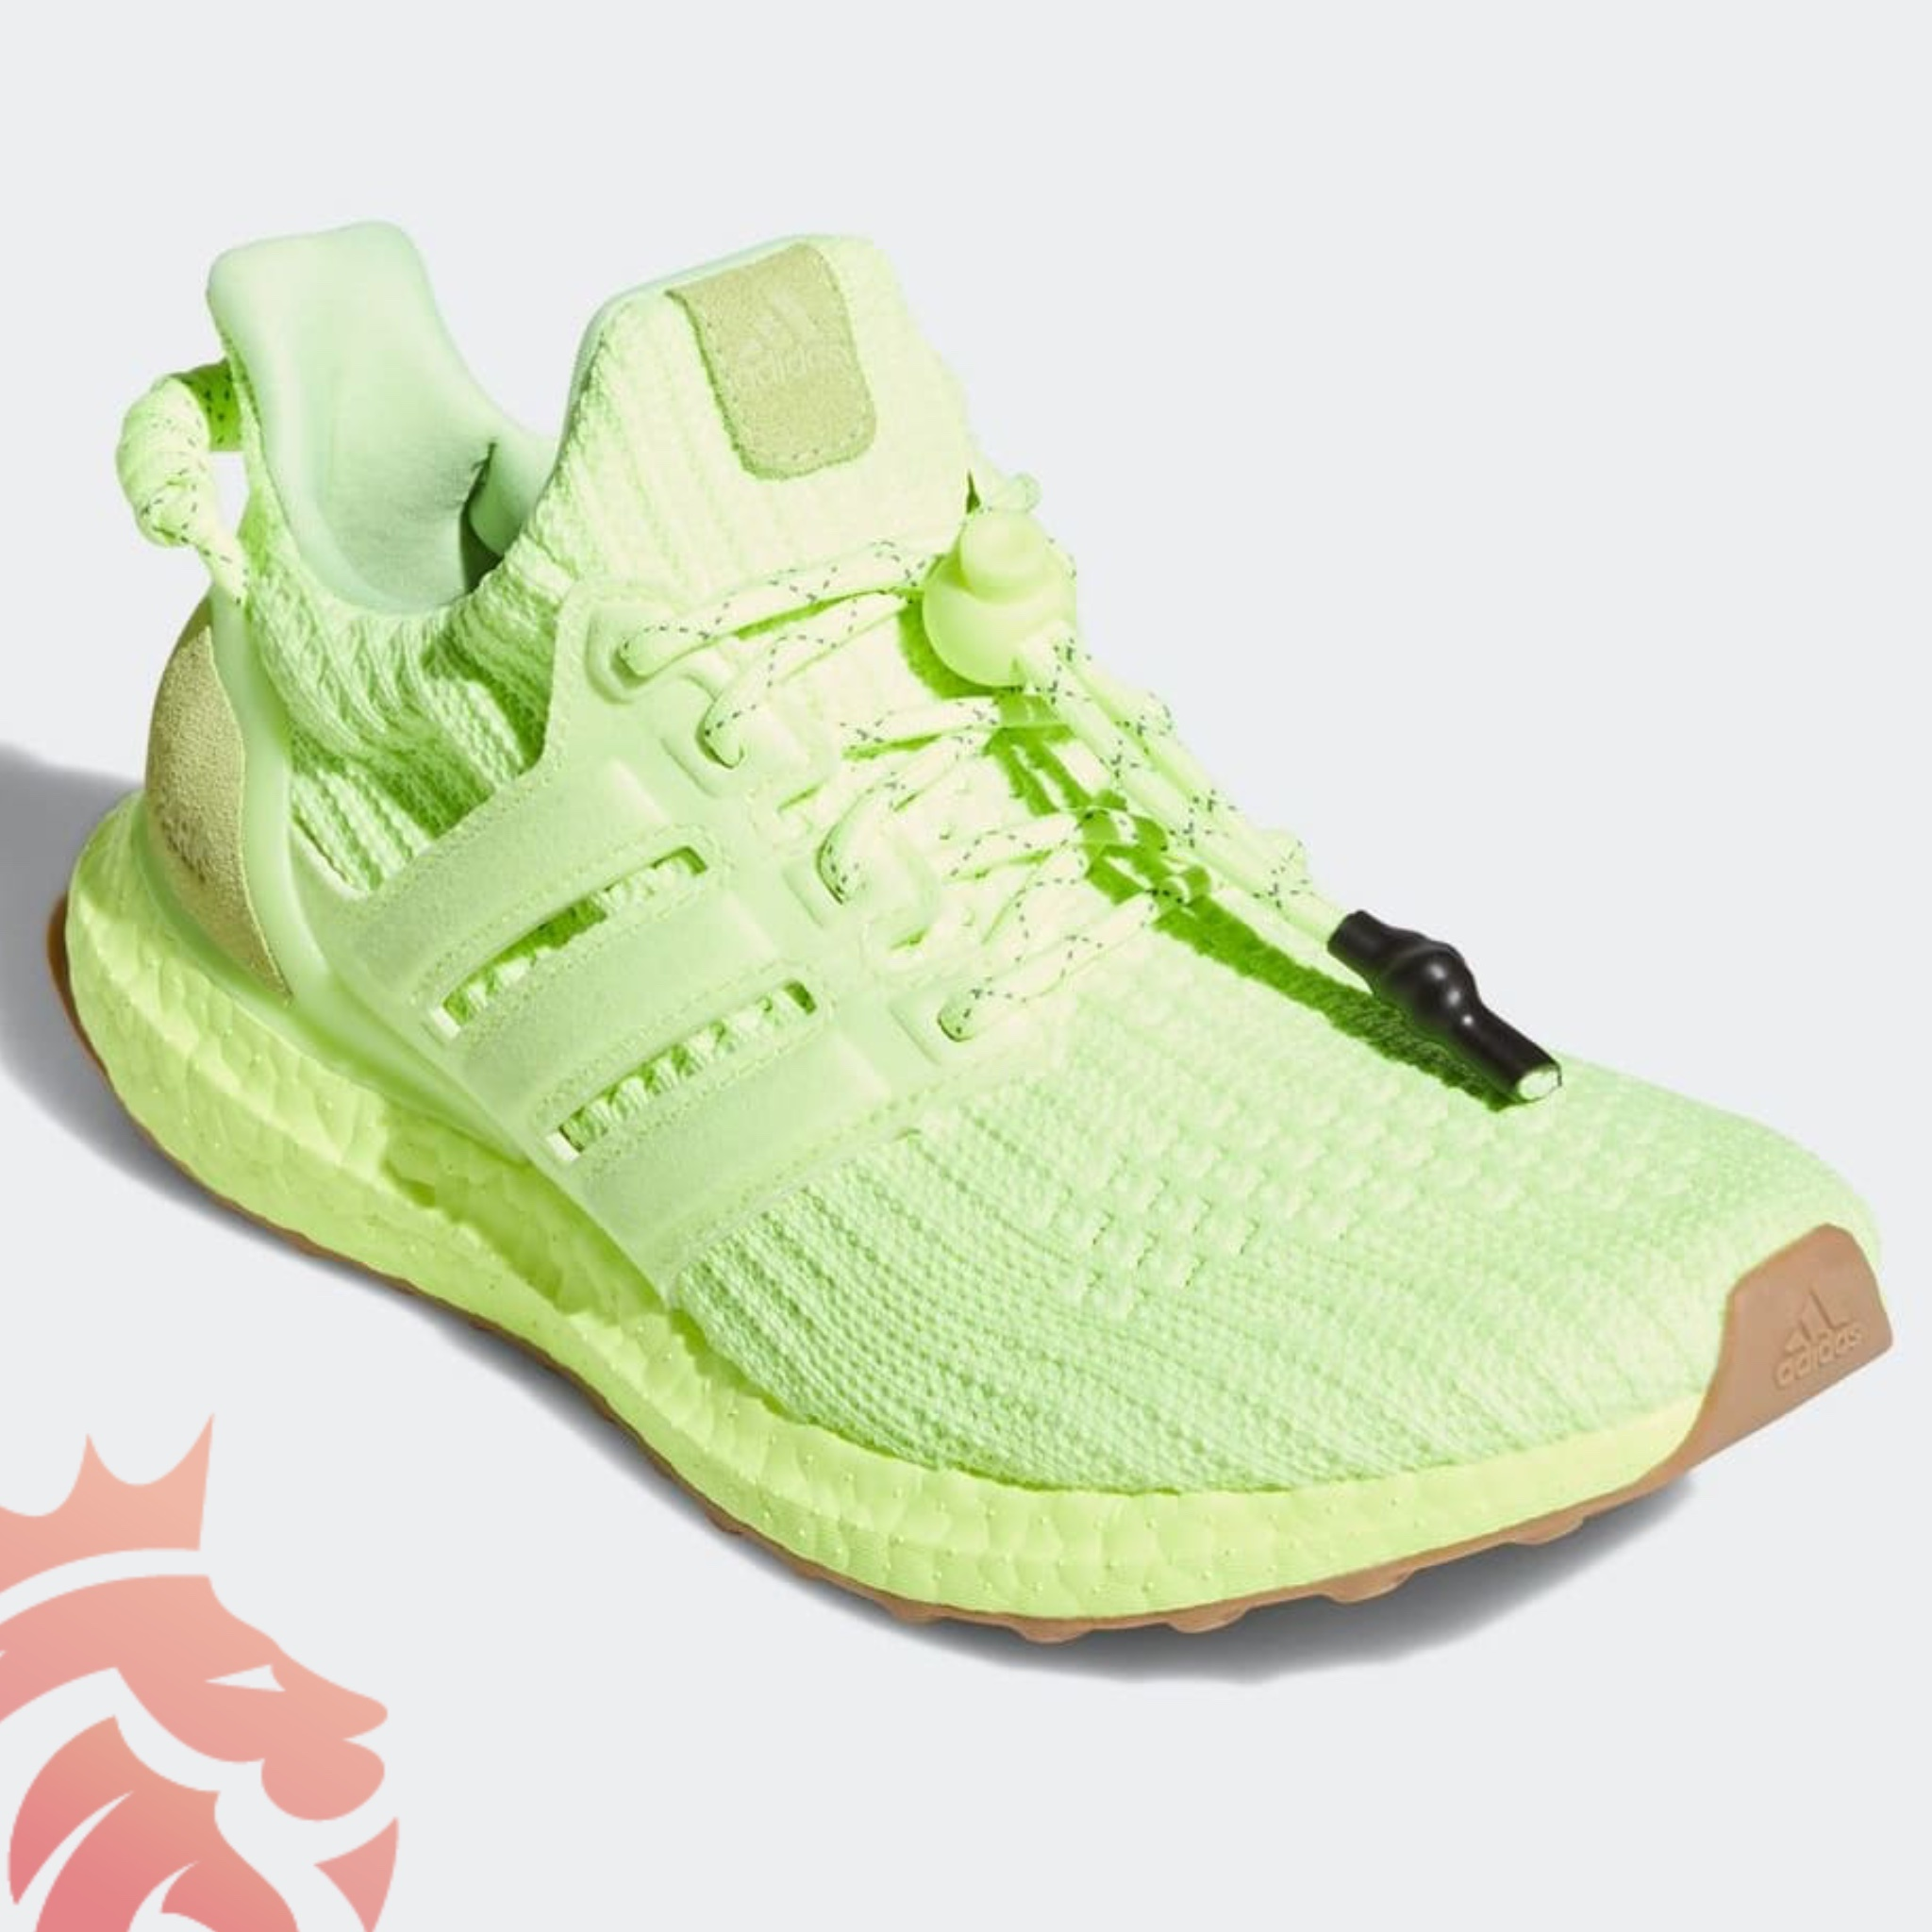 Ivy Park x adidas Ultra Boost FZ5456 Hi-Res Yellow/Hi-Res Yellow/Gum